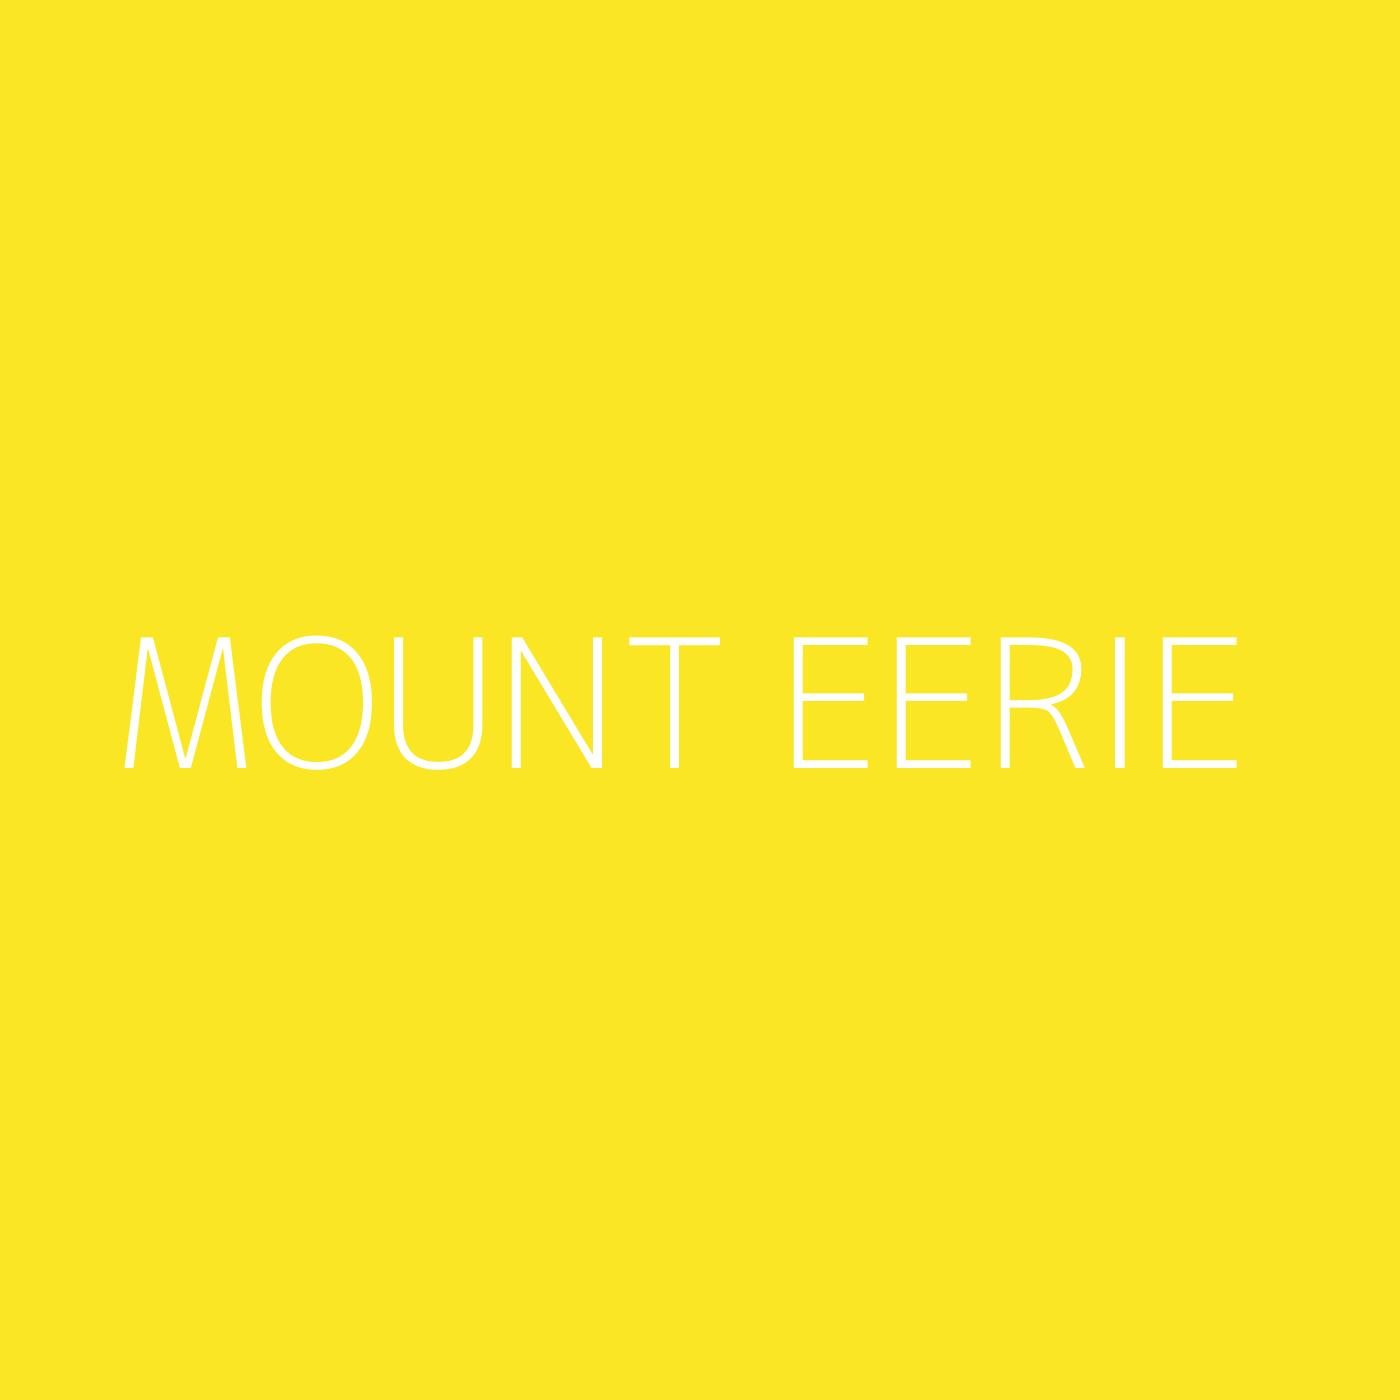 Mount Eerie Playlist Artwork